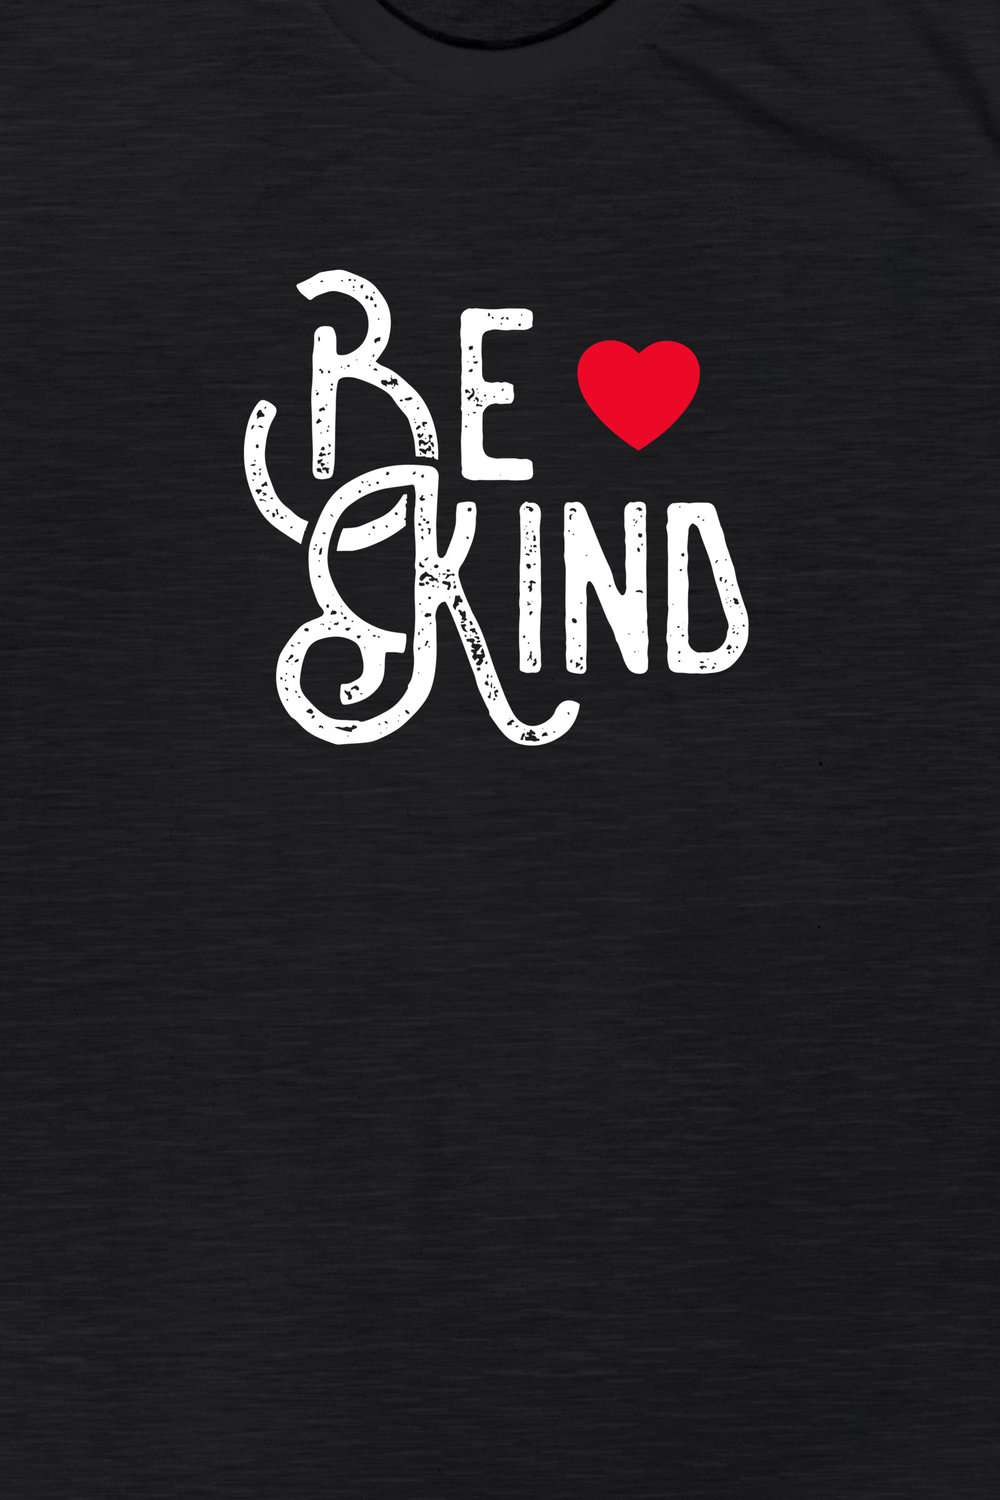 Click on the pic to get your Be Kind shirts to benefit Pop Culture Heroes Anti-bullying campaign.